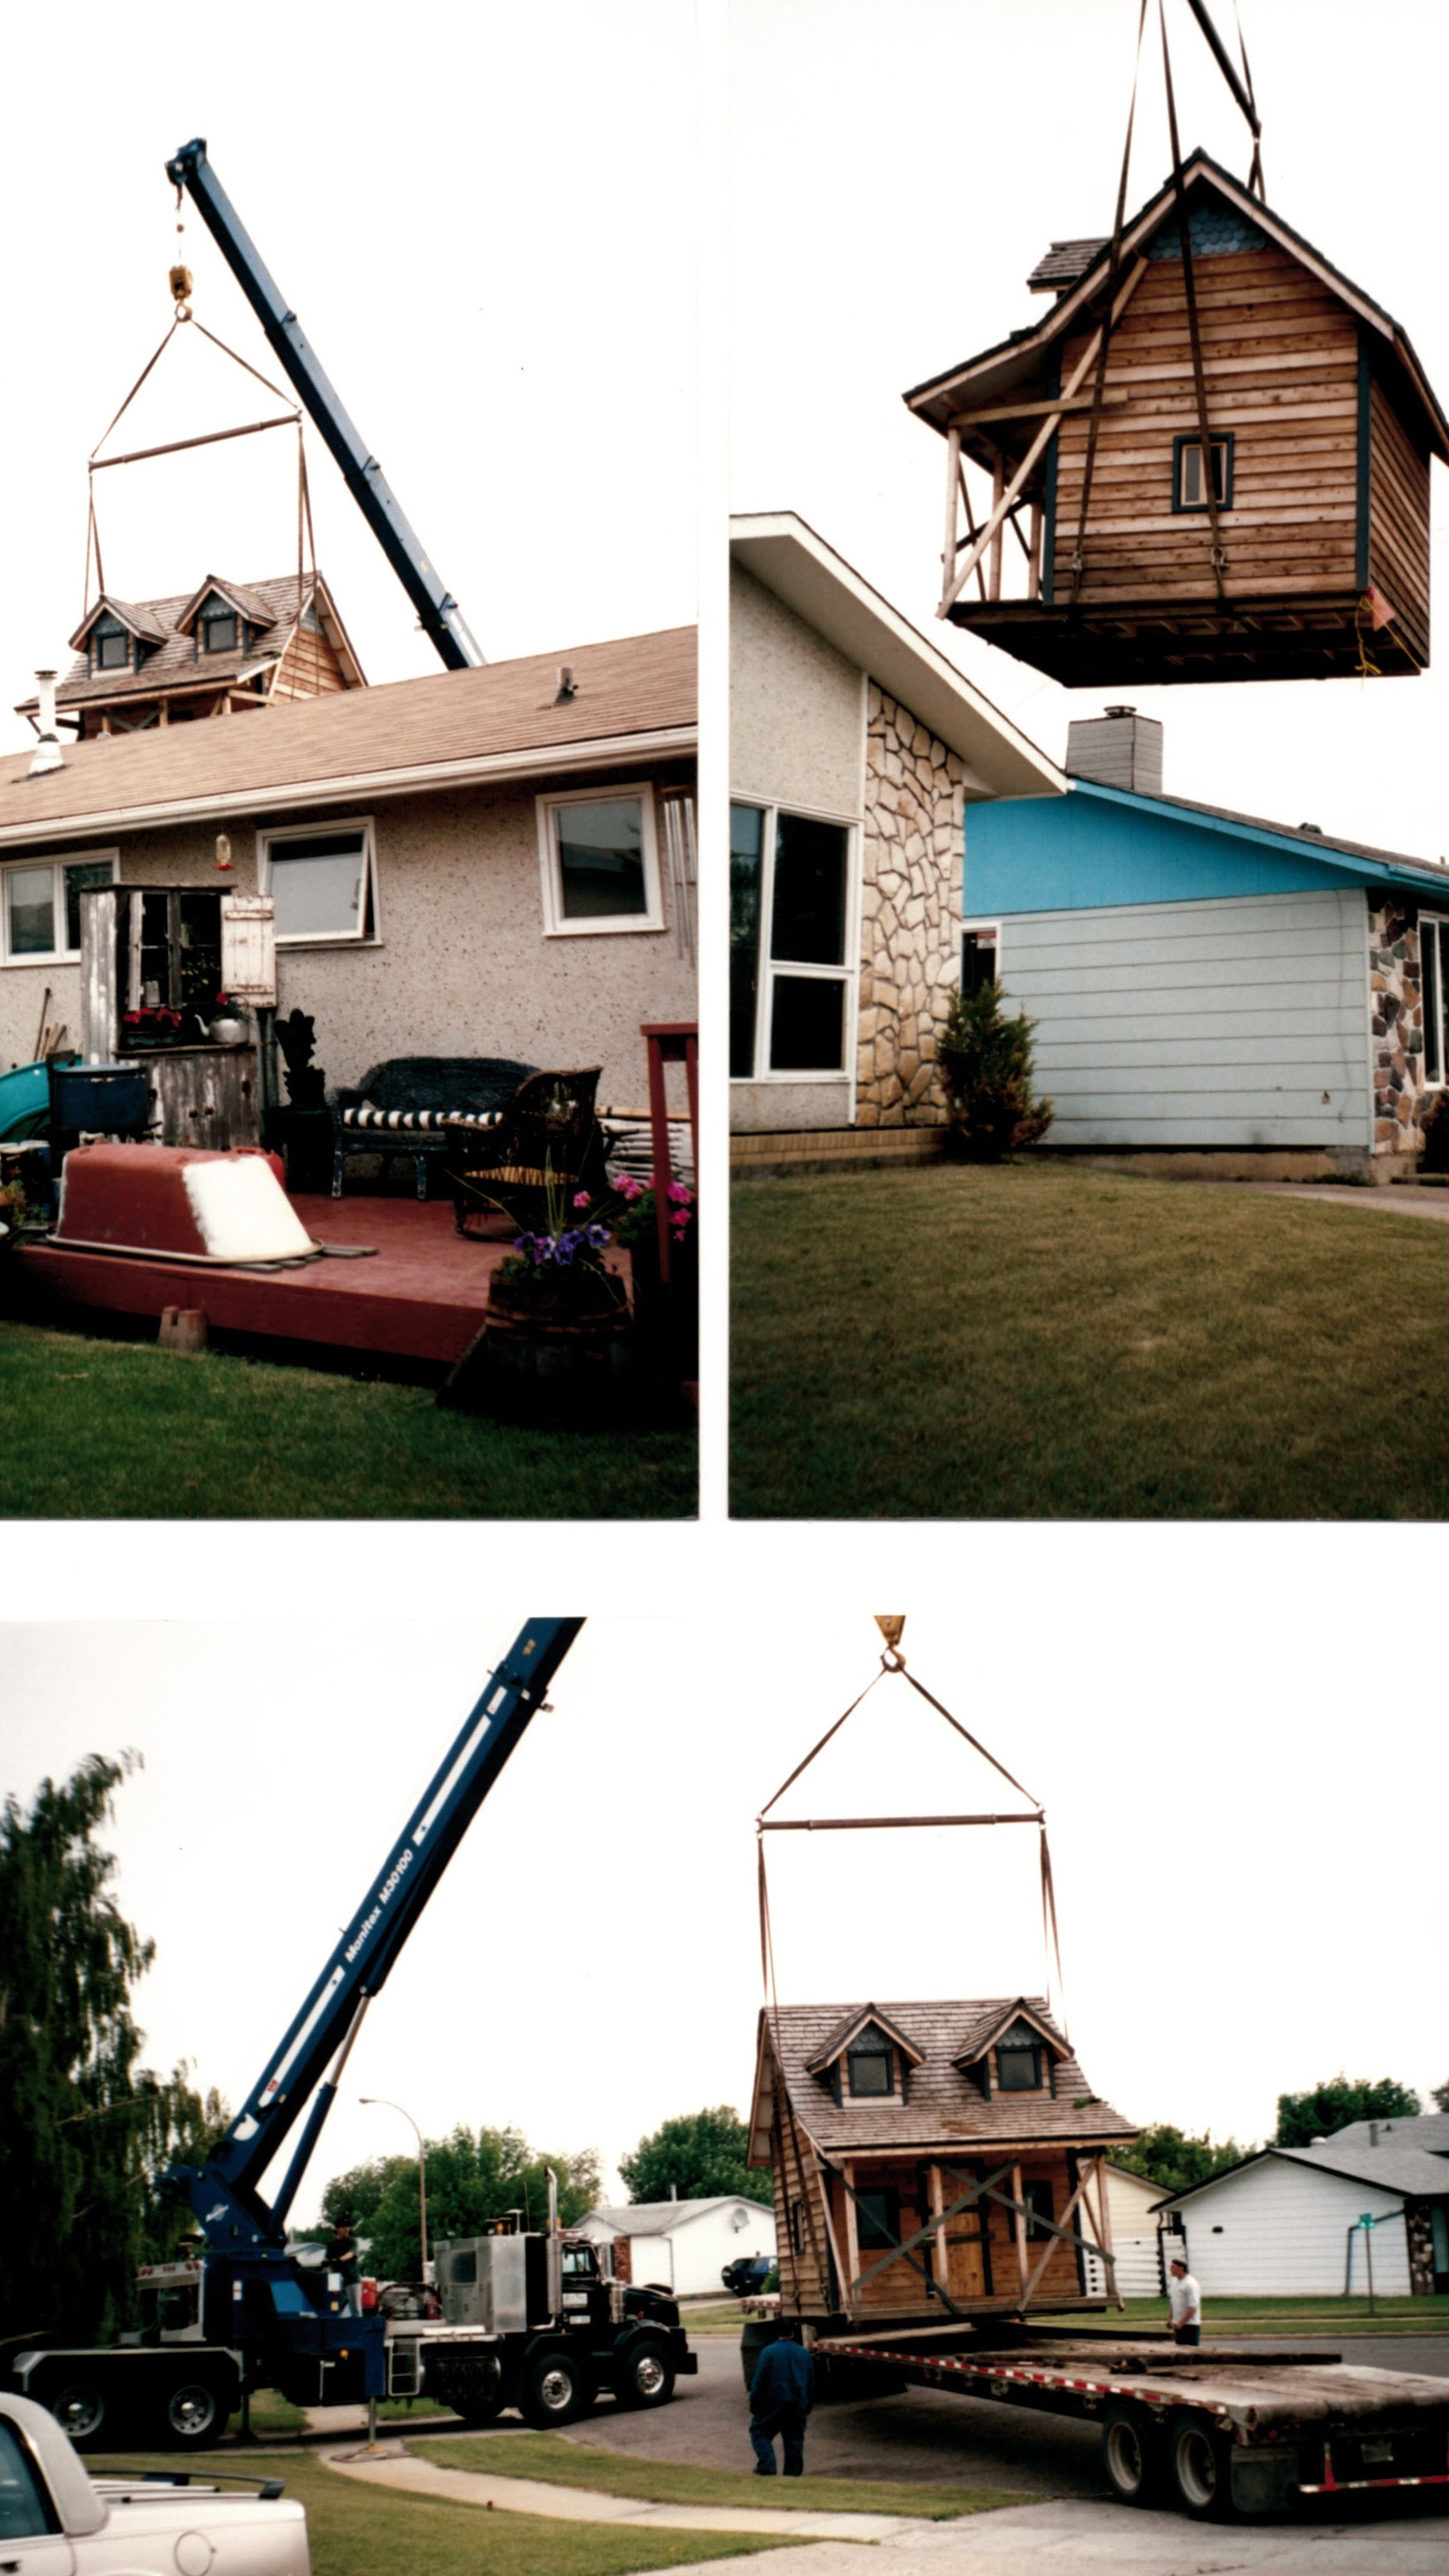 2000 - 30 TON PICKER - INSTALLING PLAY HOUSE IN BACK YARD